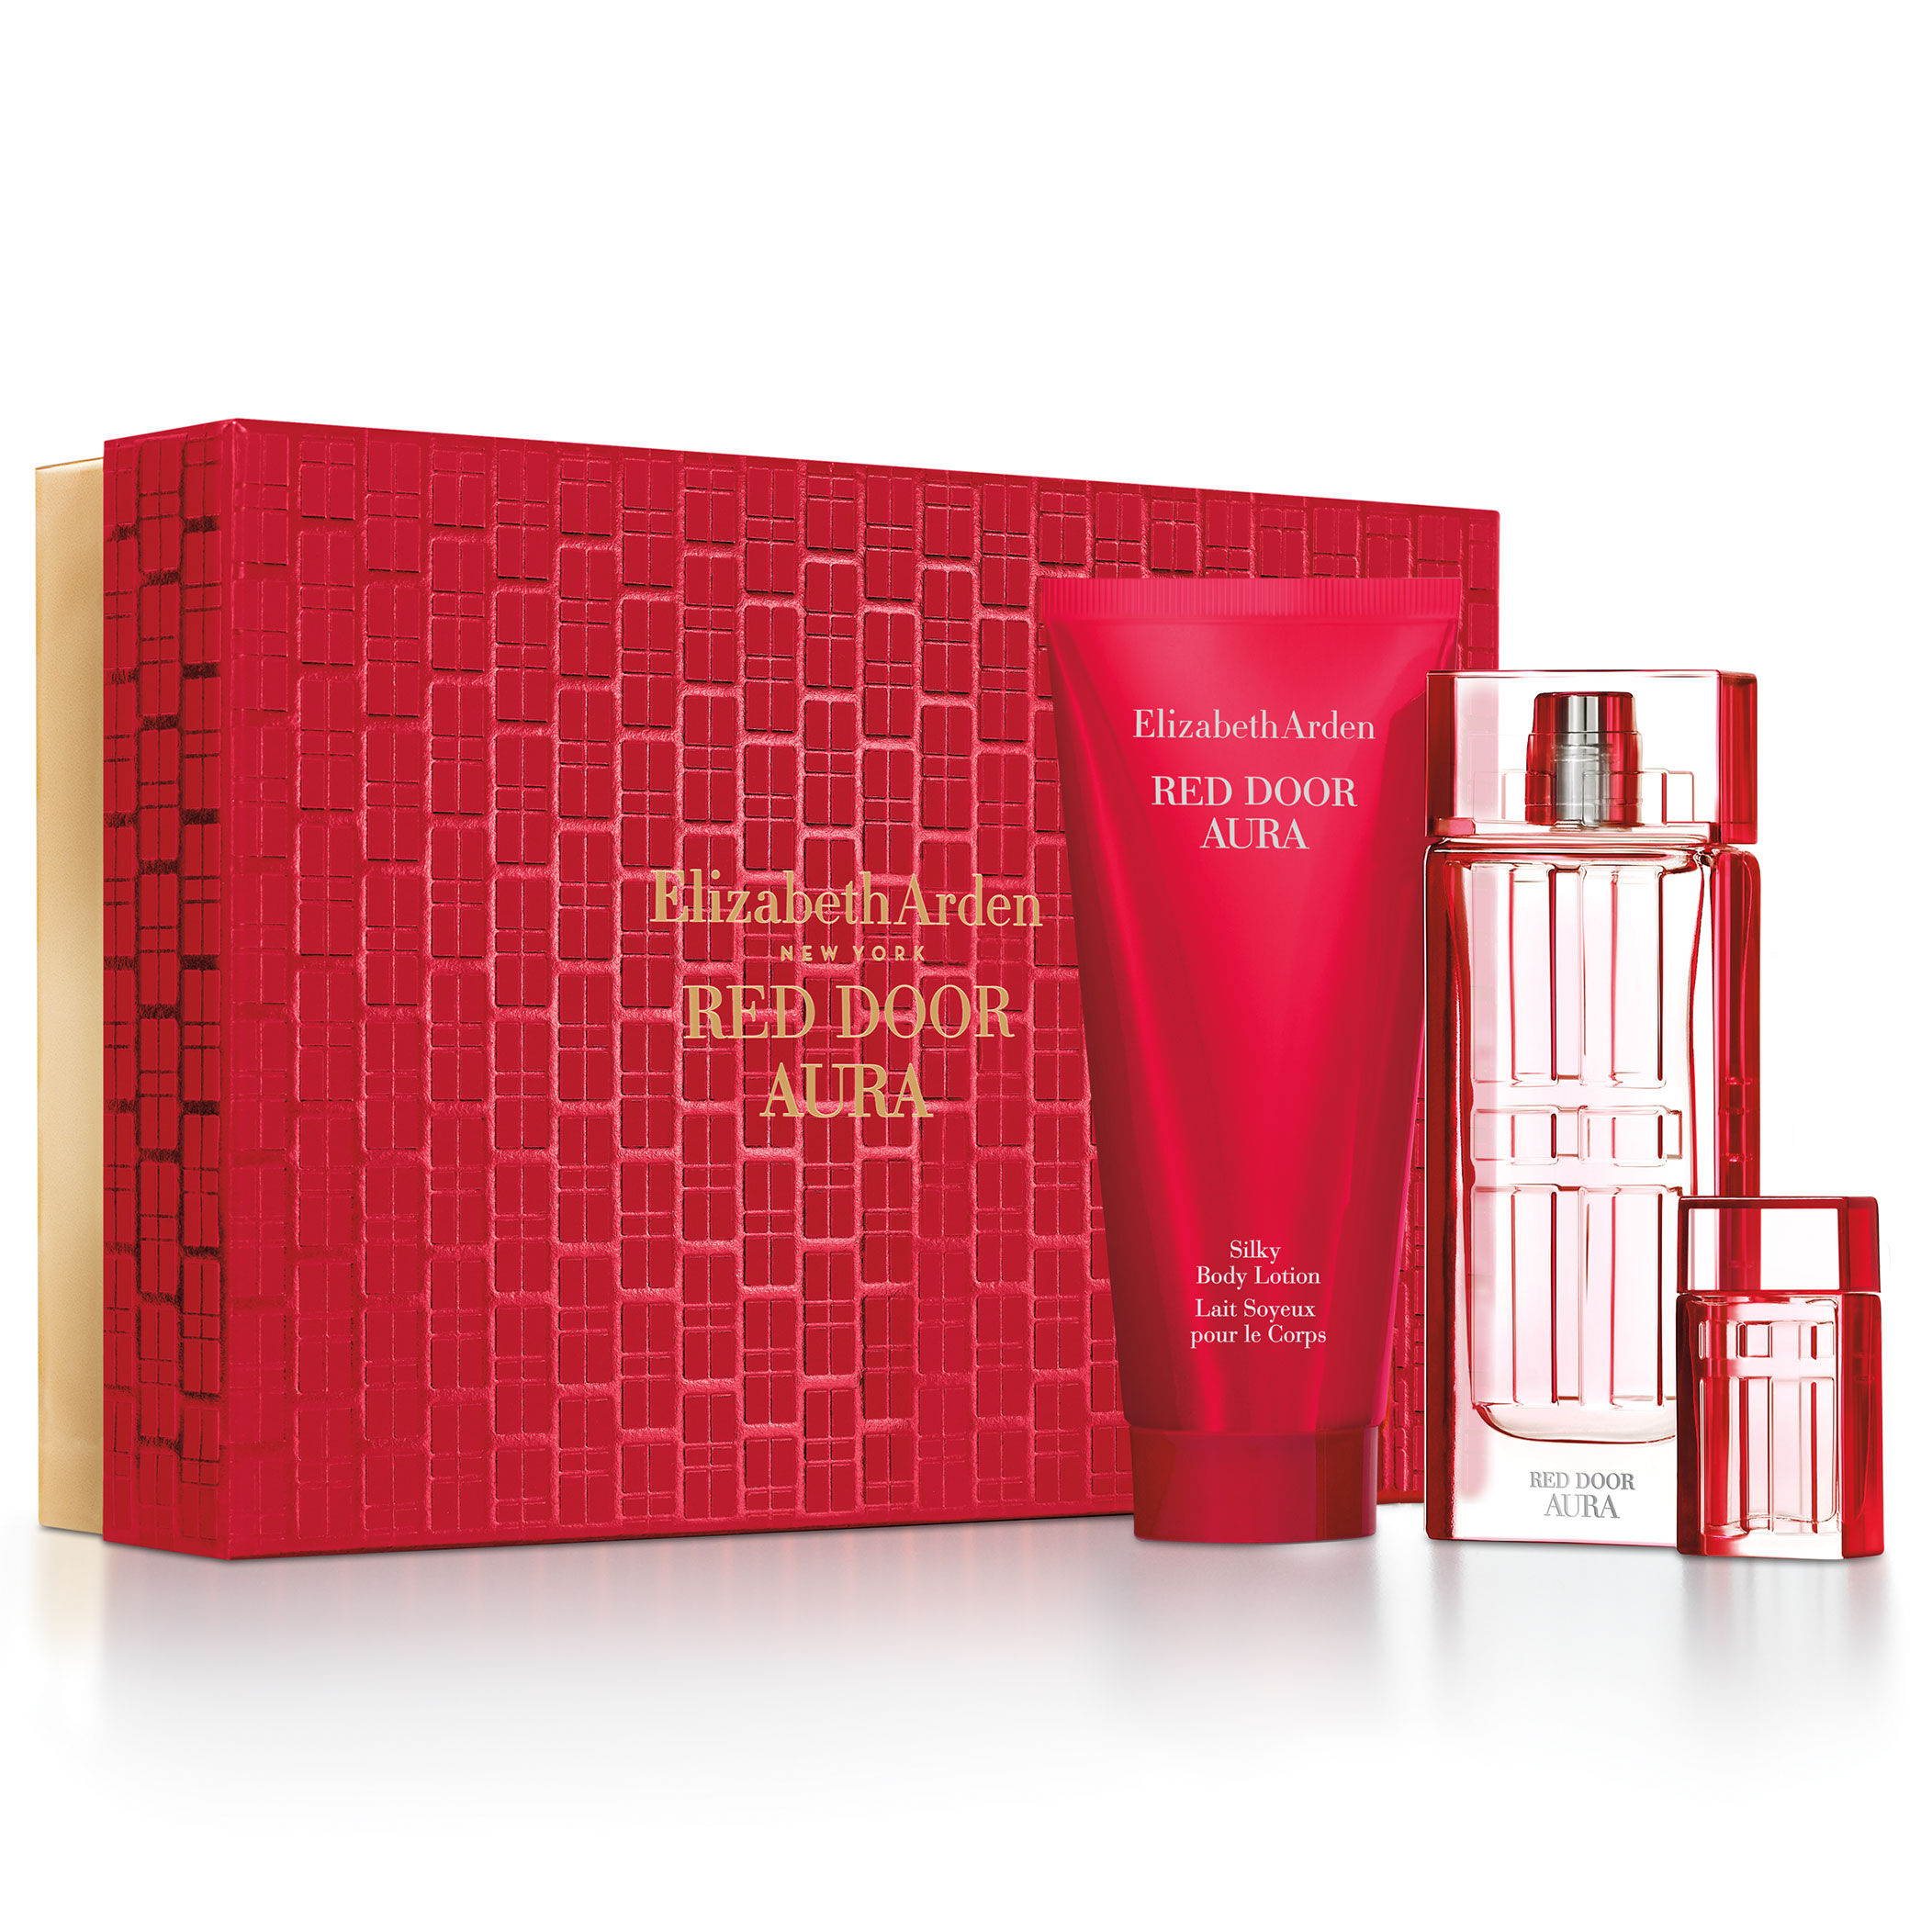 Red Door Aura Holiday Gift Set